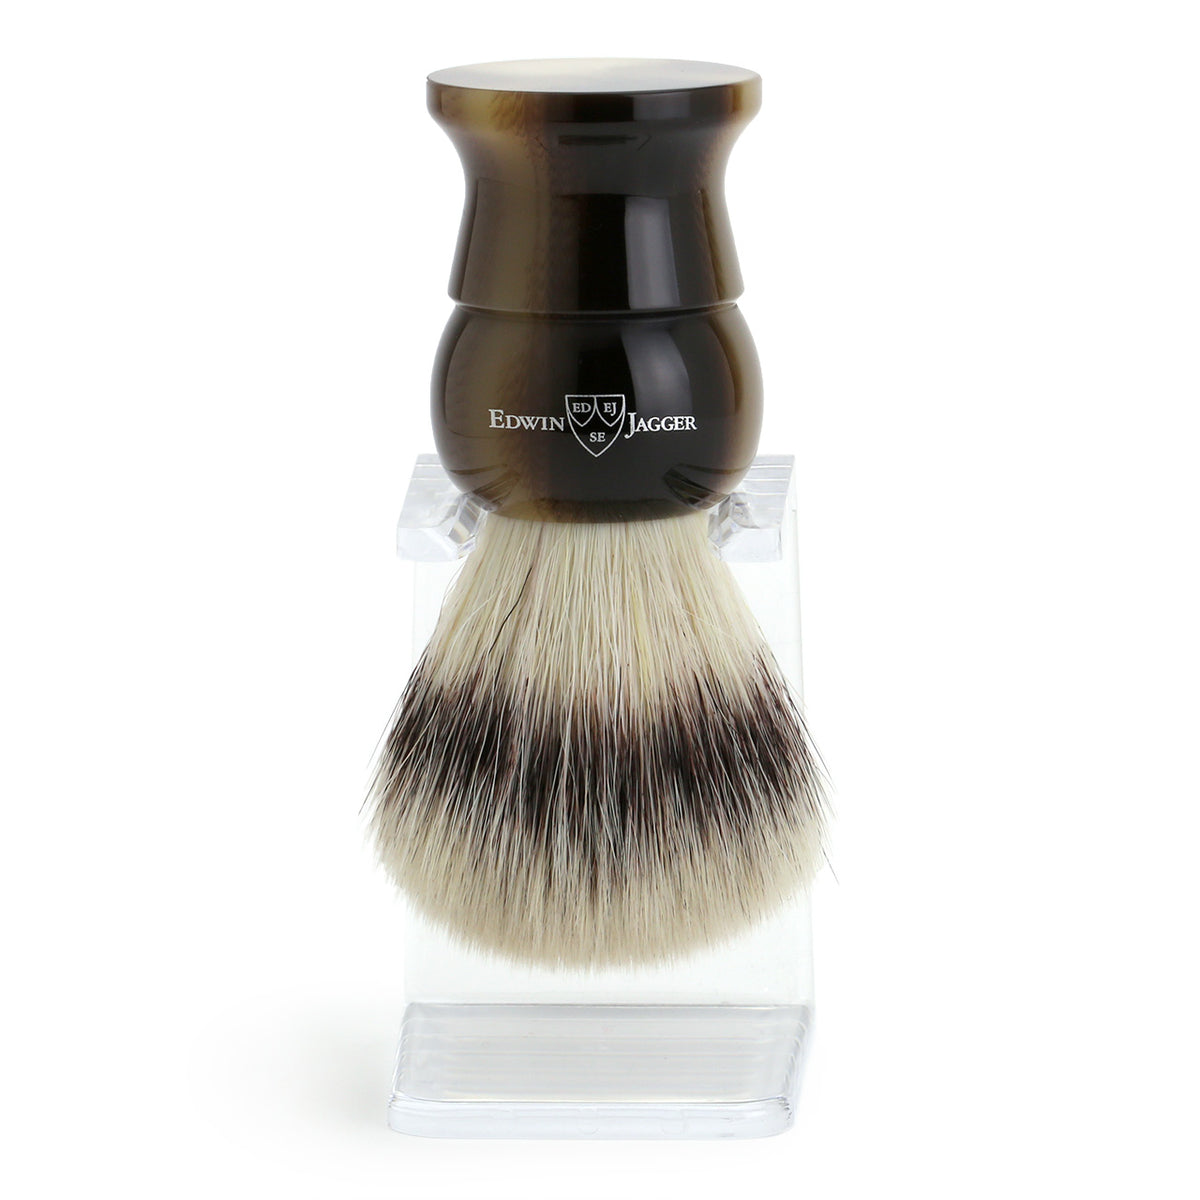 Edwin Jagger Imitation Light Horn Shaving Brush Synthetic Silver Tip with Drip Stand - Extra Large